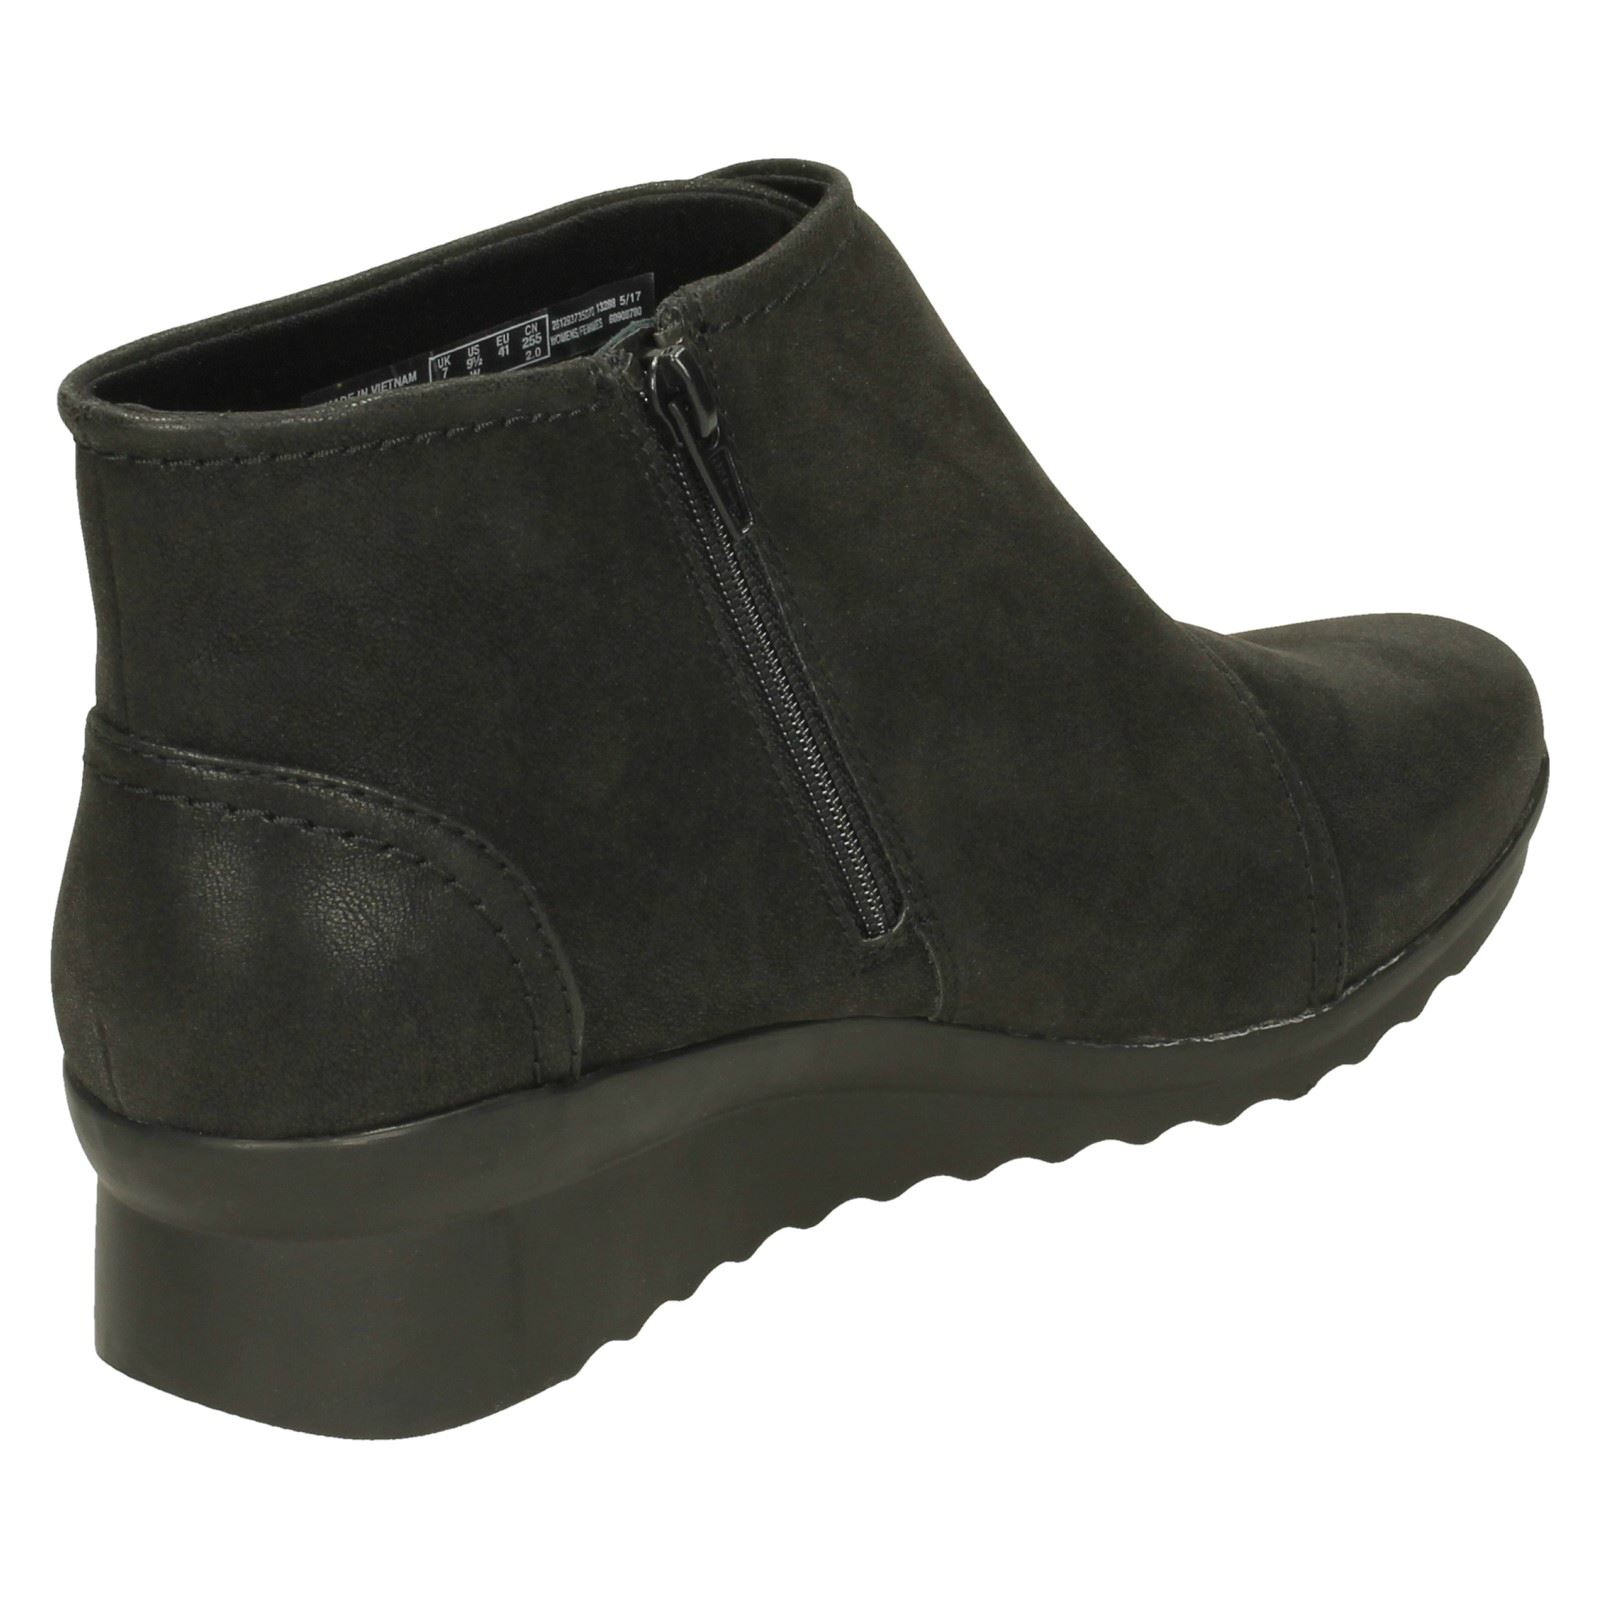 Ladies-Clarks-Cloudsteppers-Wedge-Heel-Ankle-Boots-Caddell-Rush